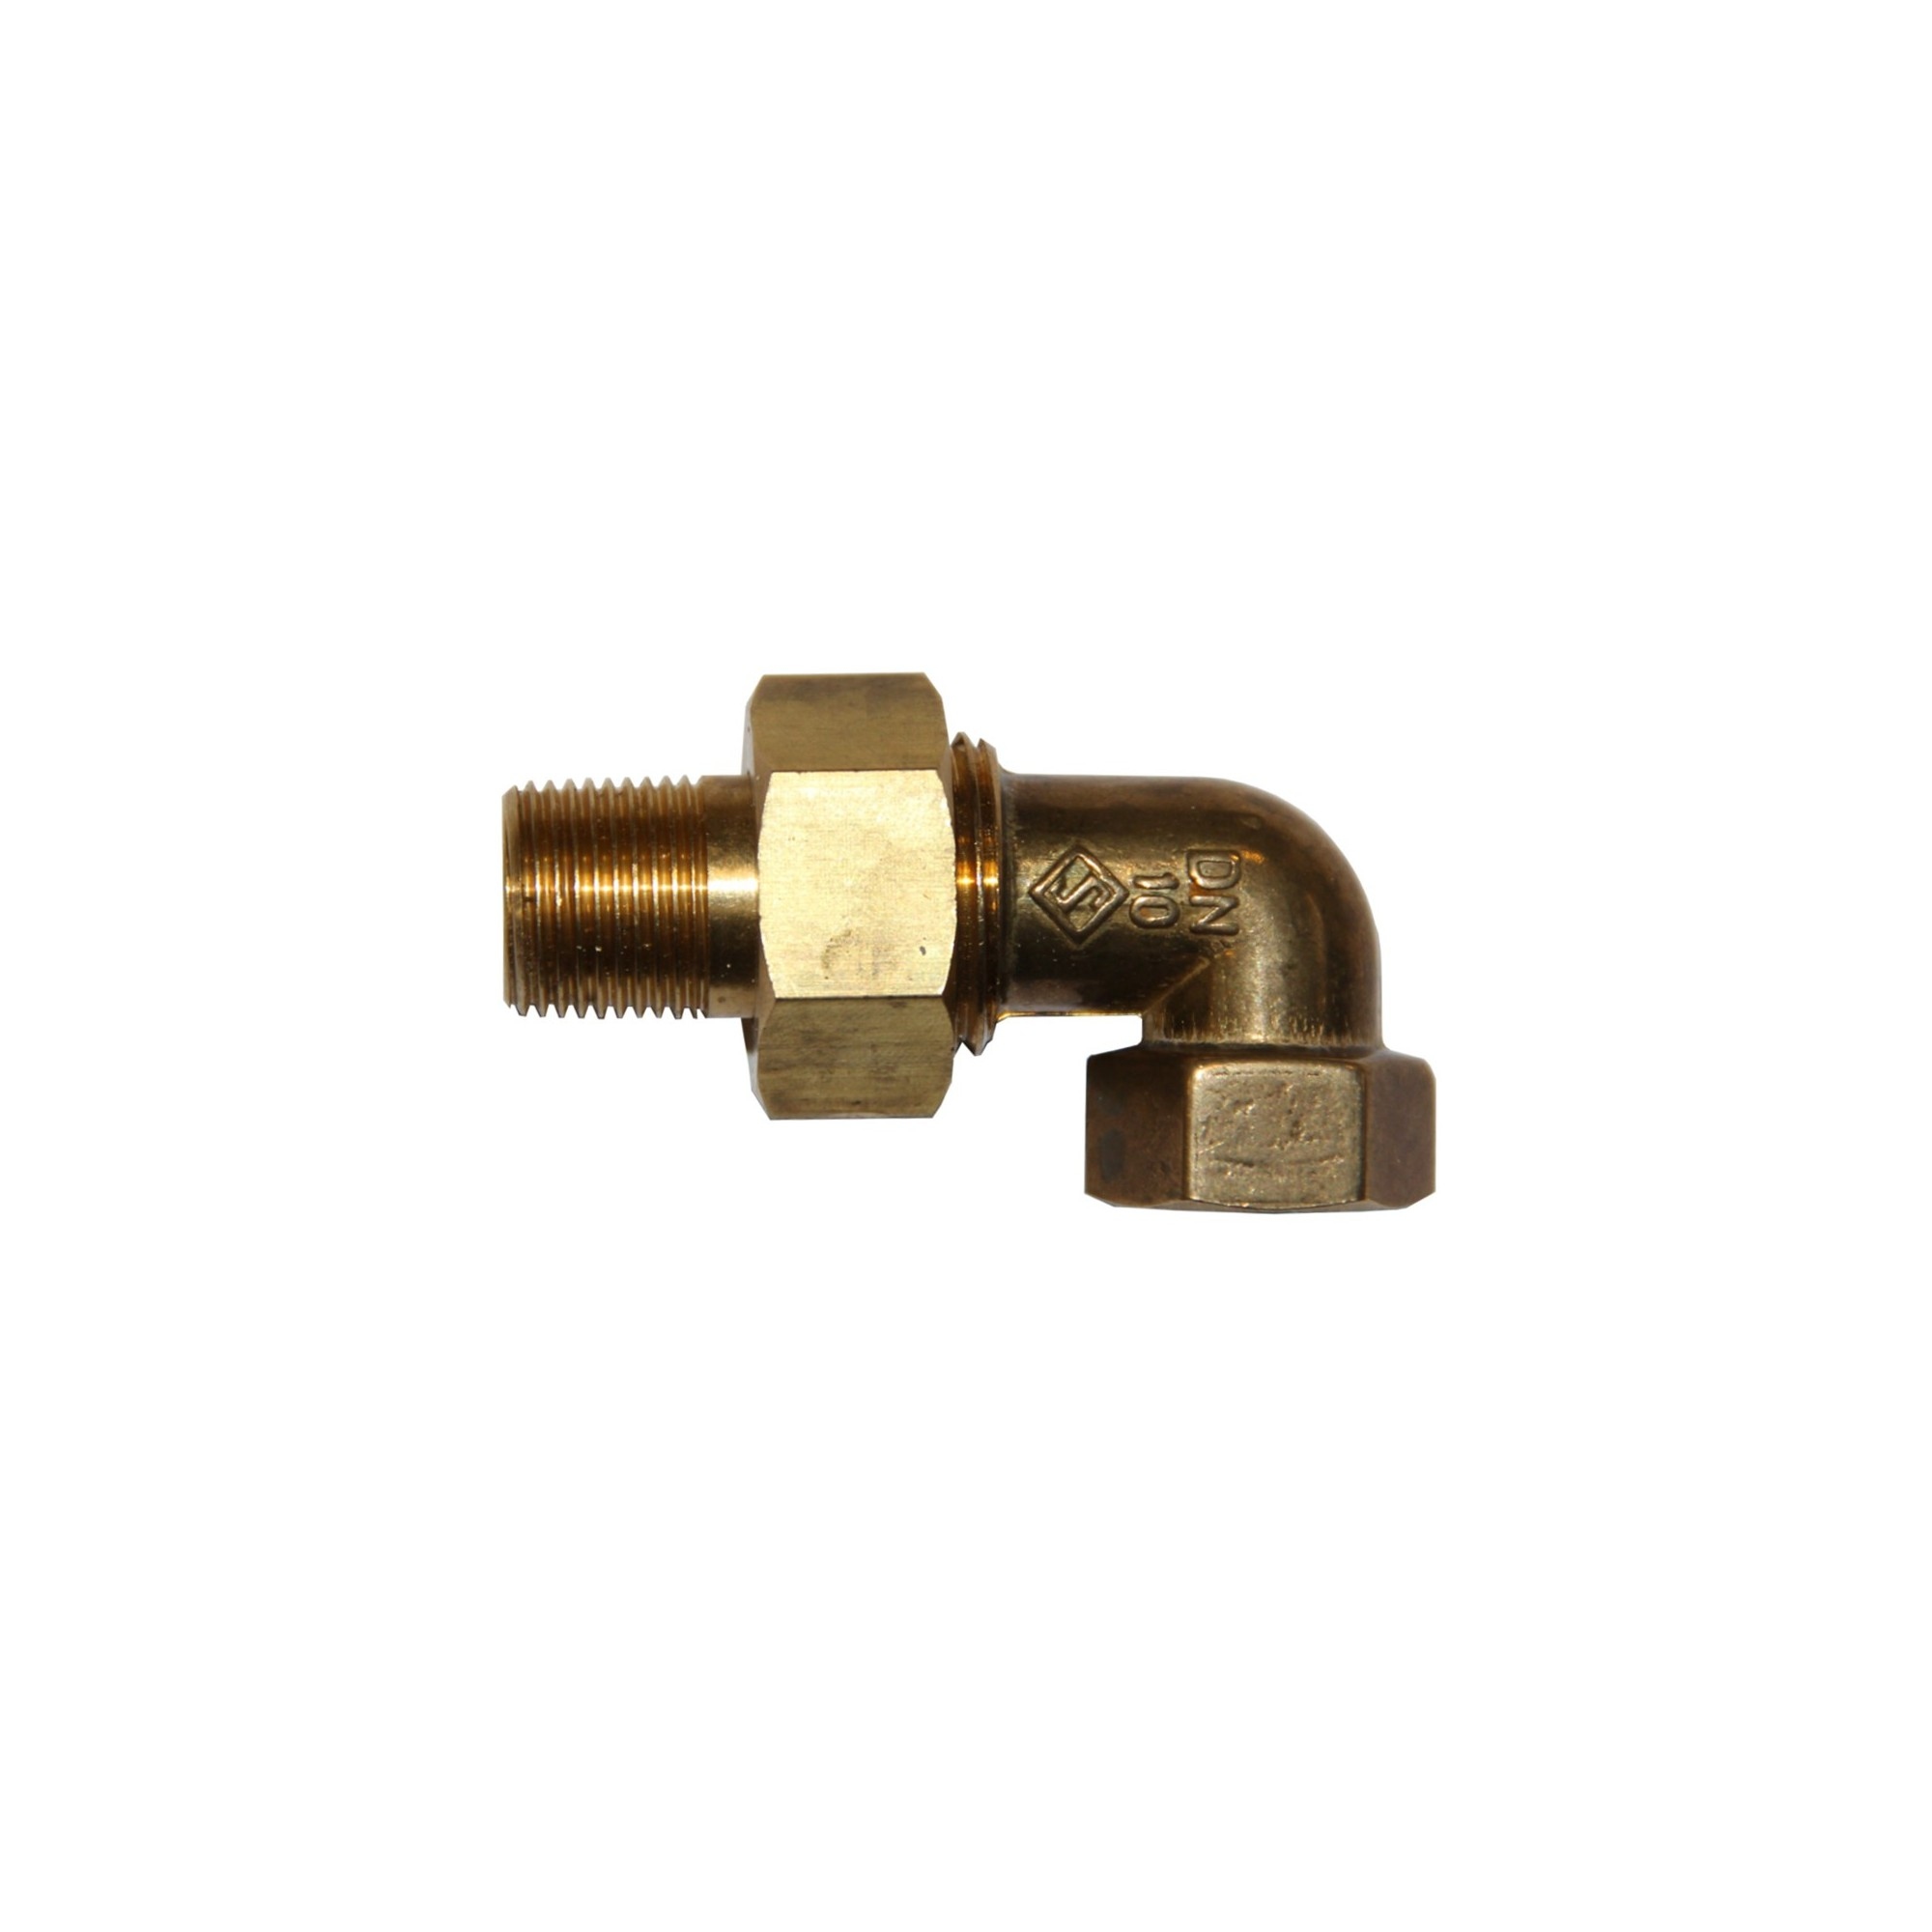 3-PIECE COUPLER 90° COPPER